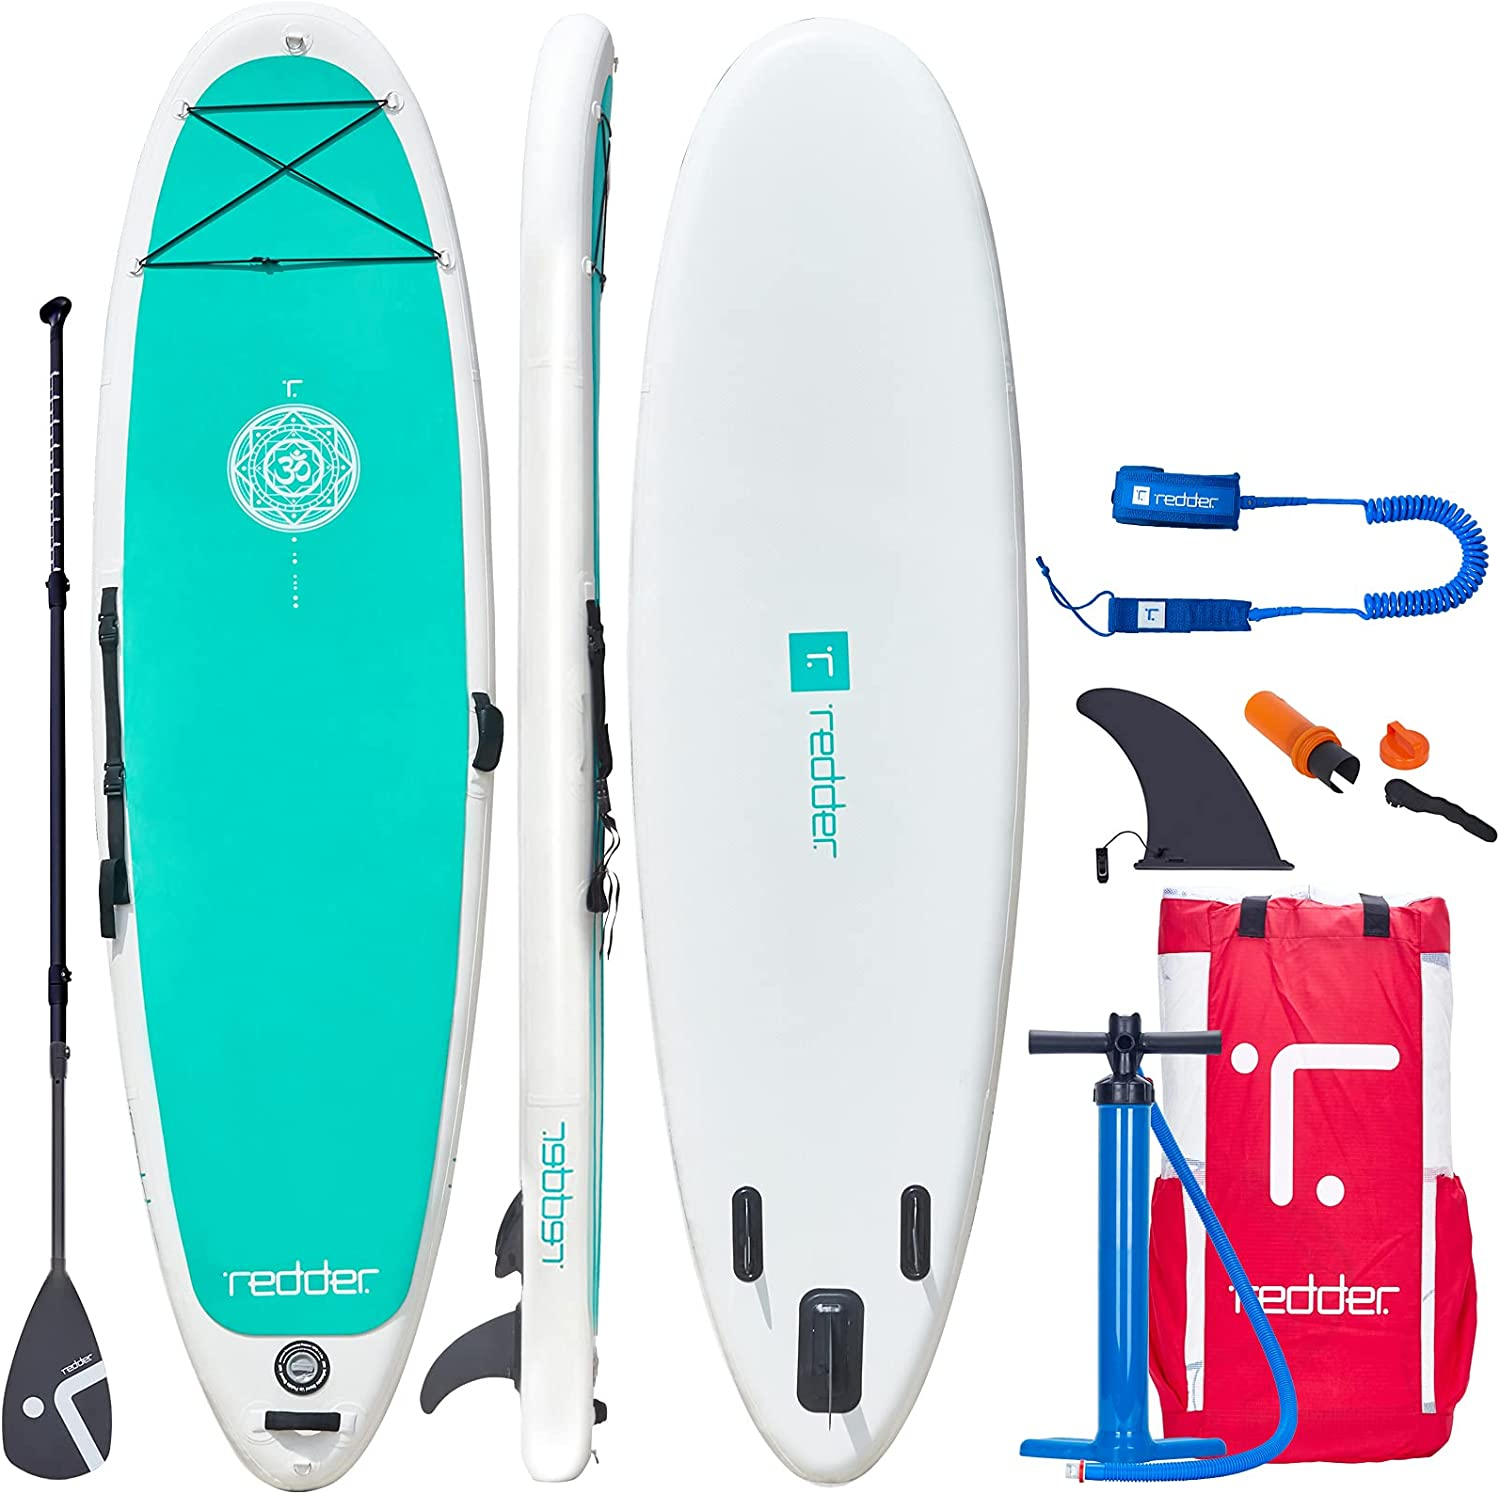 redder Latest item Inflatable Stand Up Paddle Board Light Utral Pre with Kit Popular popular